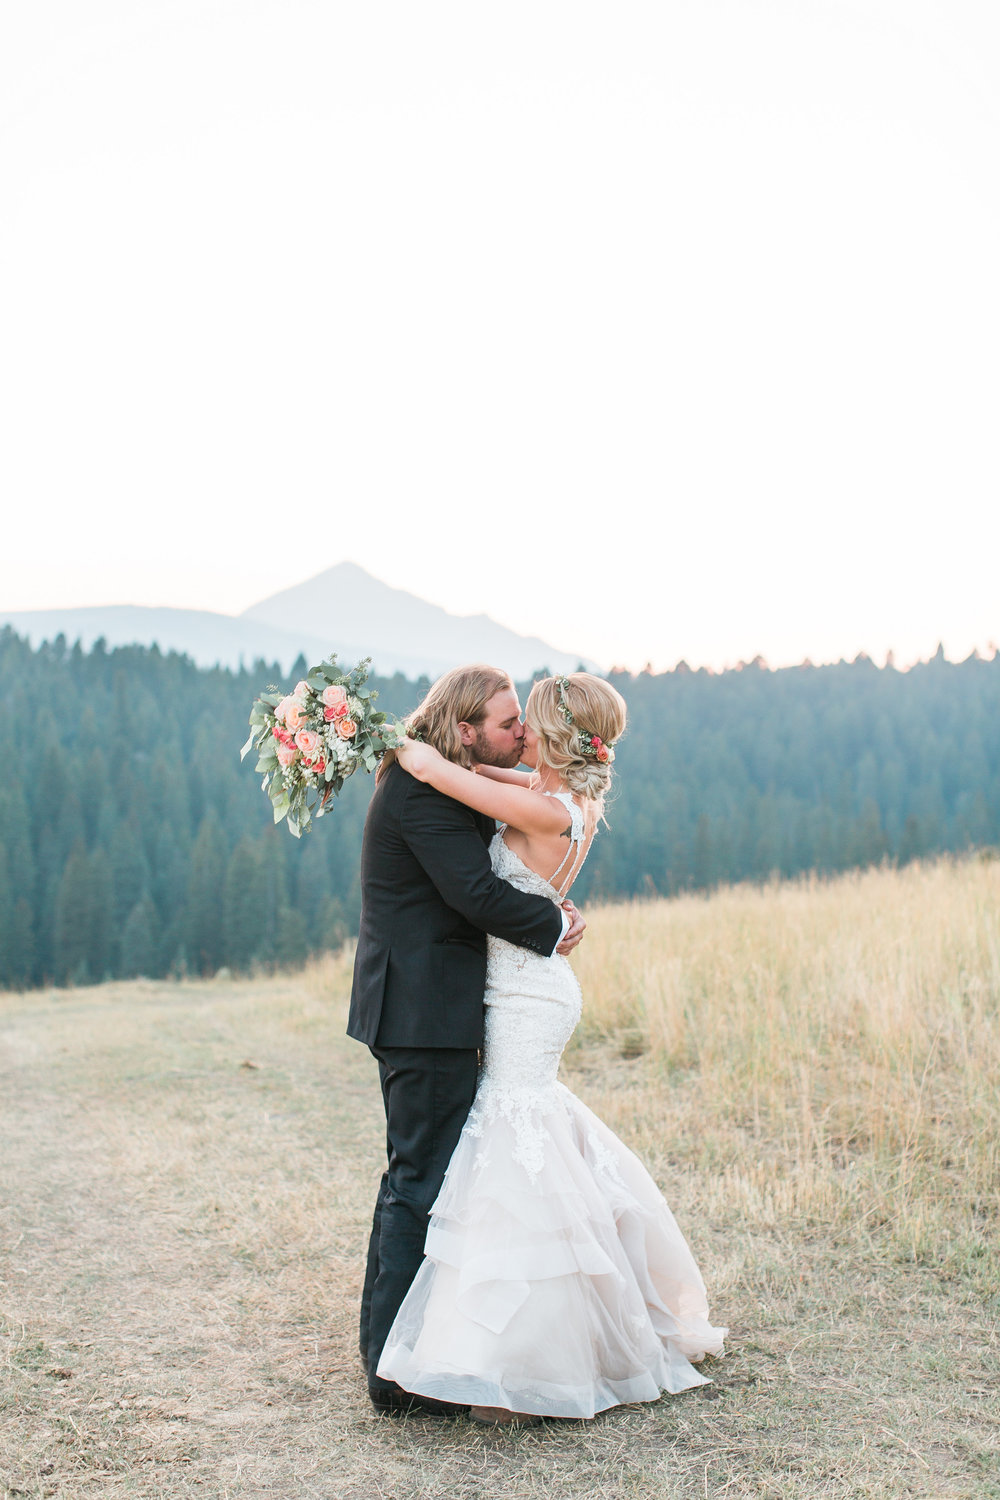 Boho bride and groom kissing with mountains in the background in Big Sky Montana Lone Mountain Ranch wedding Minnesota wedding photography Mallory Kiesow Photography